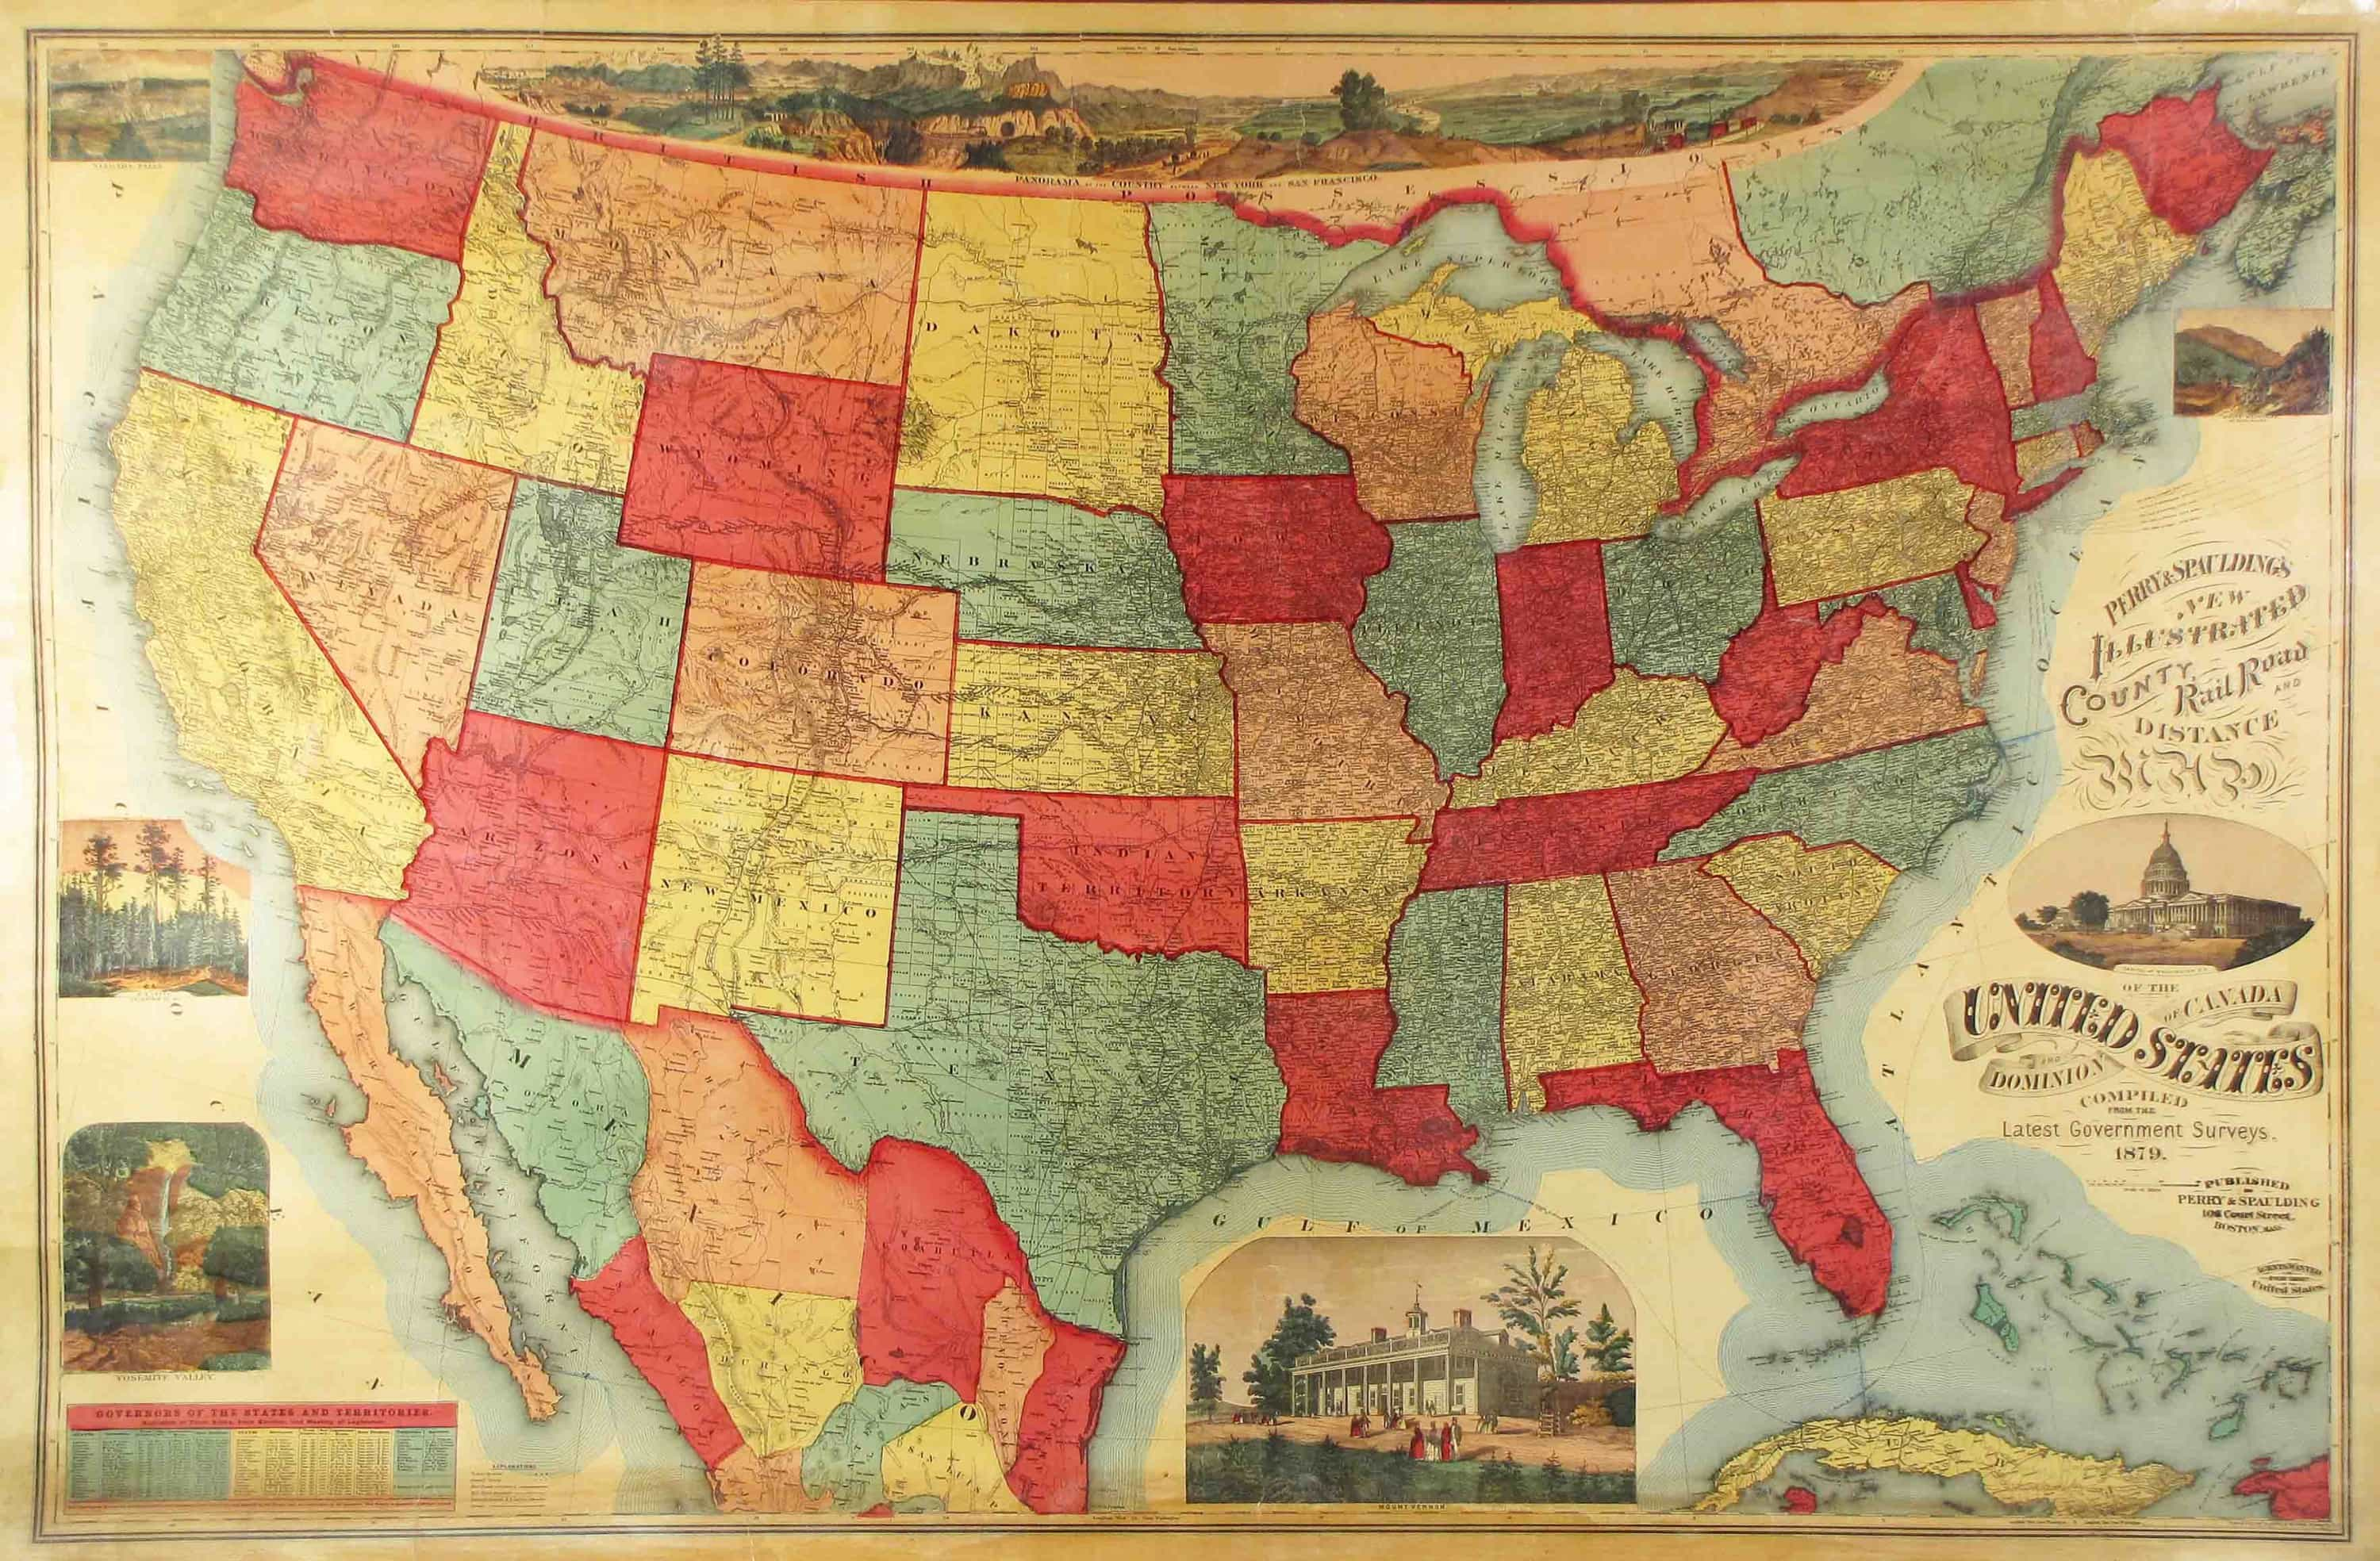 Unrecorded Variant Of A Lovely Wall Map Of The US Rare - Change map of 1968 us